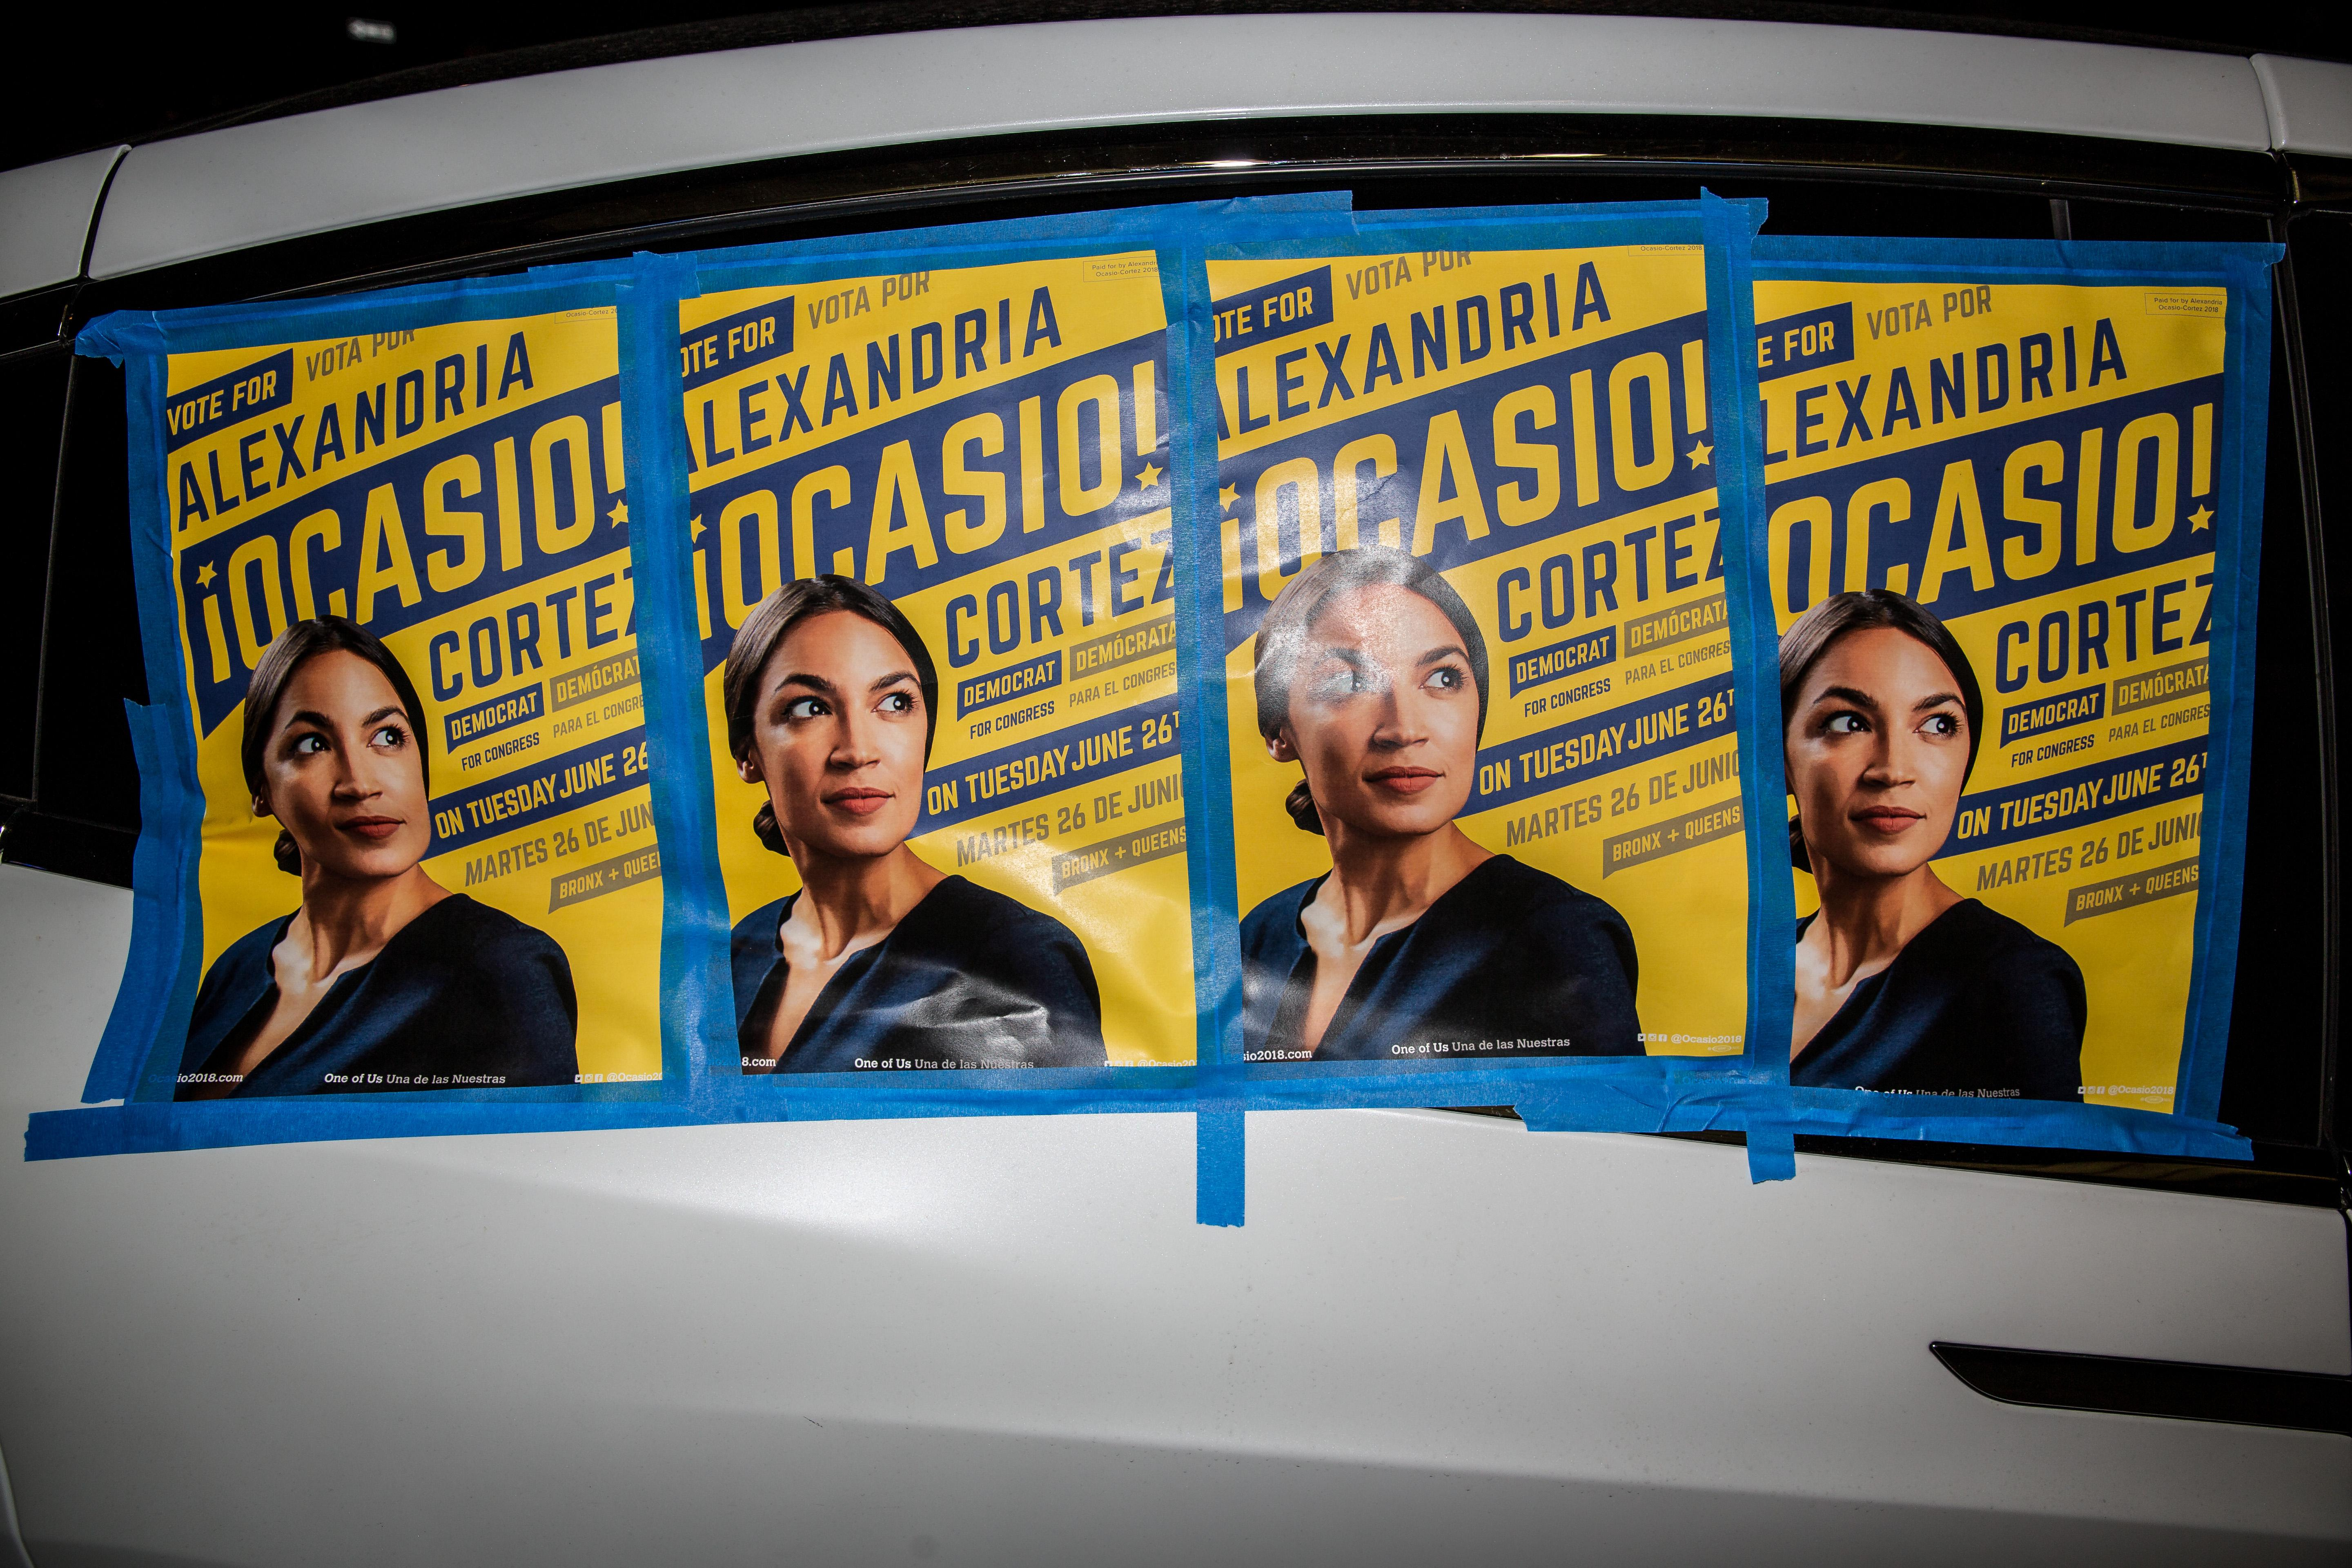 Posters for Democratic candidate Alexandria Ocasio-Cortez in the Bronx.